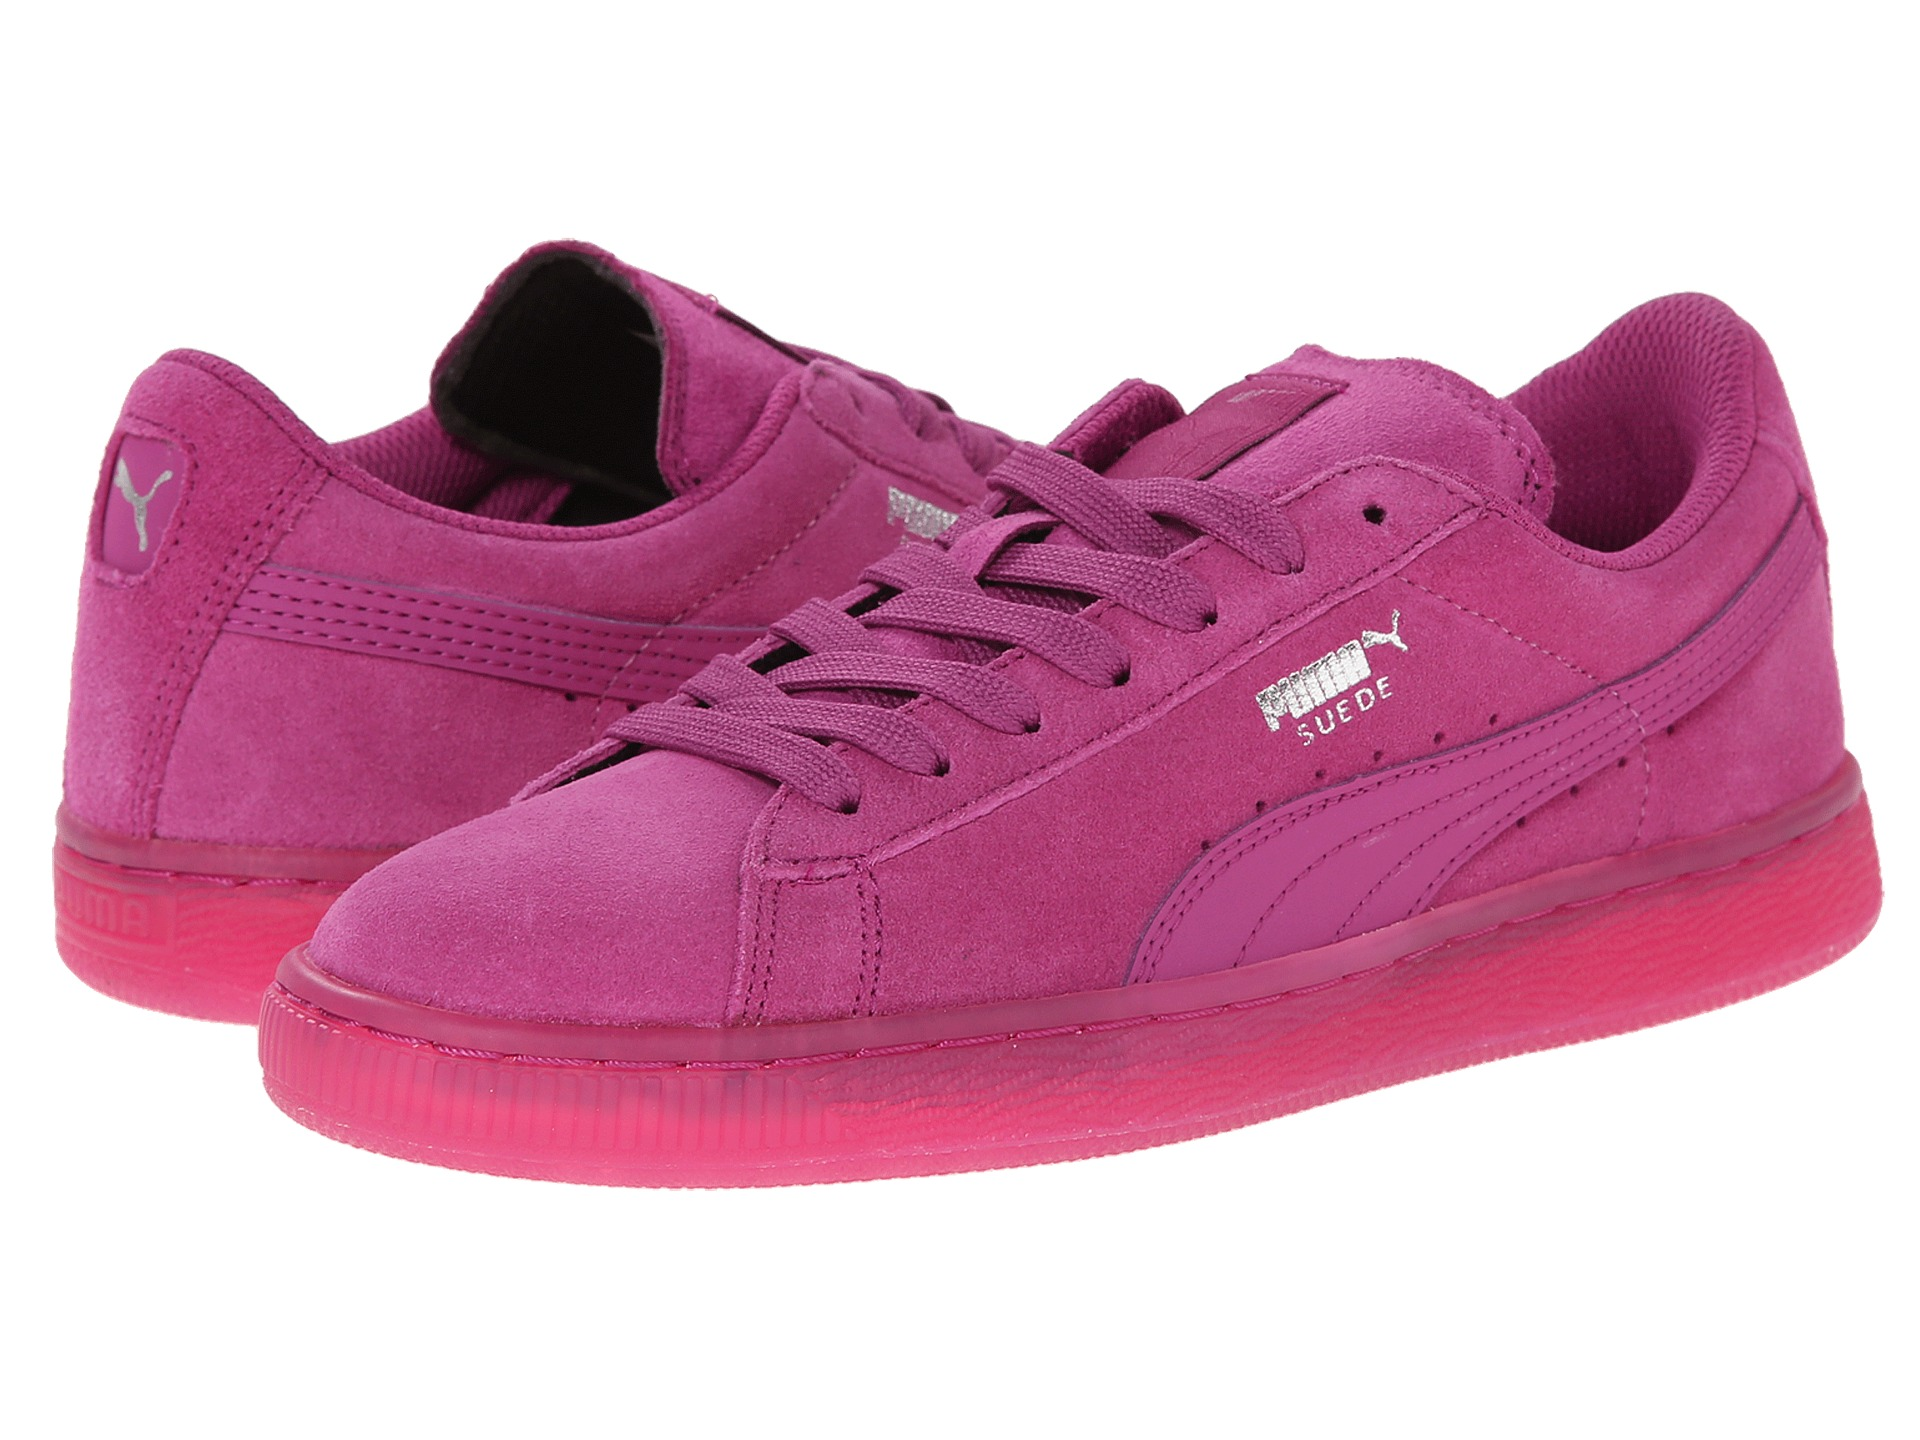 buy pink suede pumas puma trinomic white men fine shoes. Black Bedroom Furniture Sets. Home Design Ideas